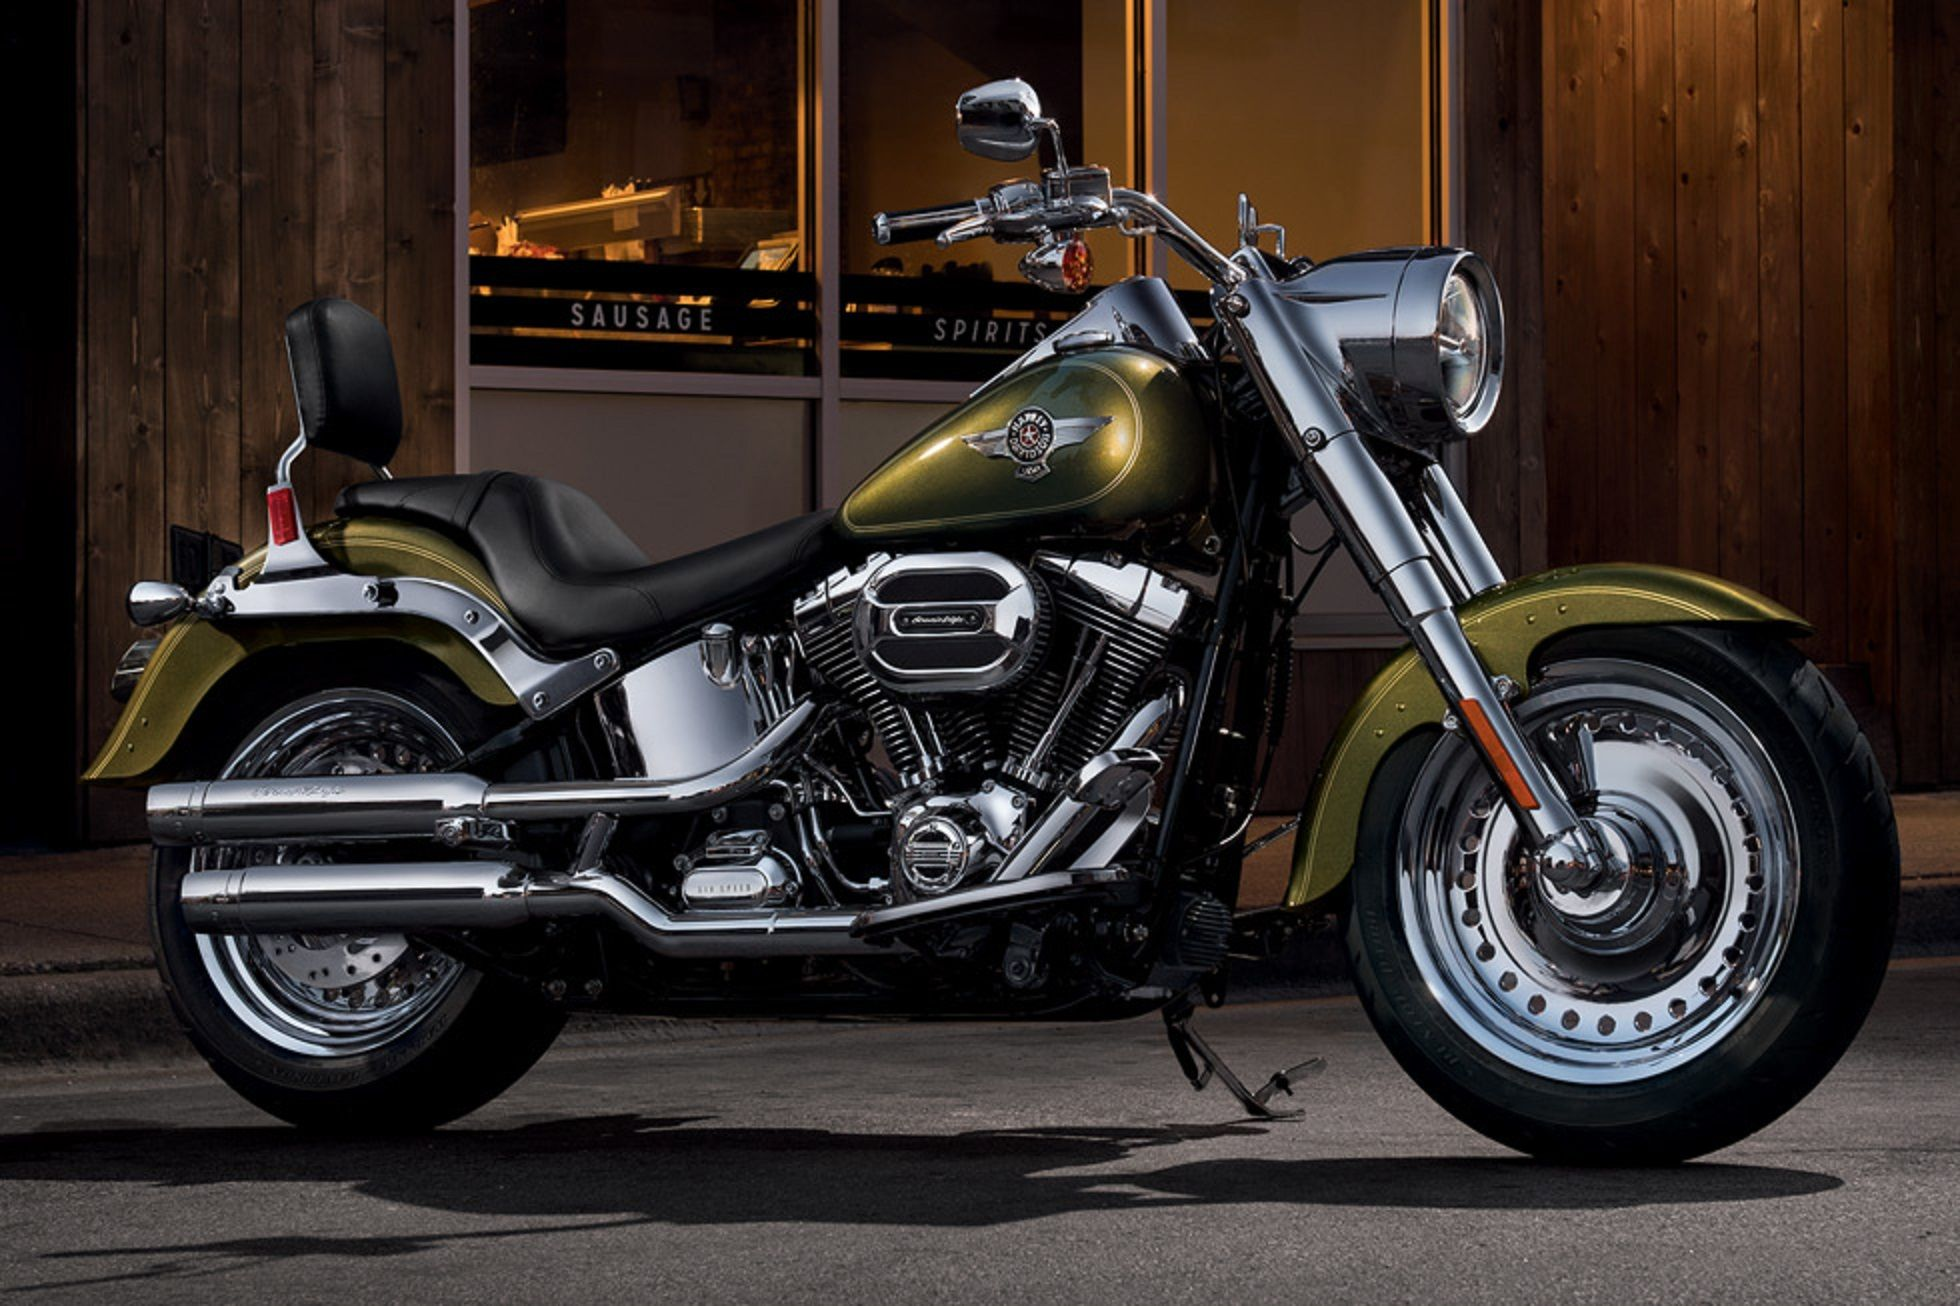 Let your eyes take a run over the 2017 harley davidson softail fat boy in this photo gallery